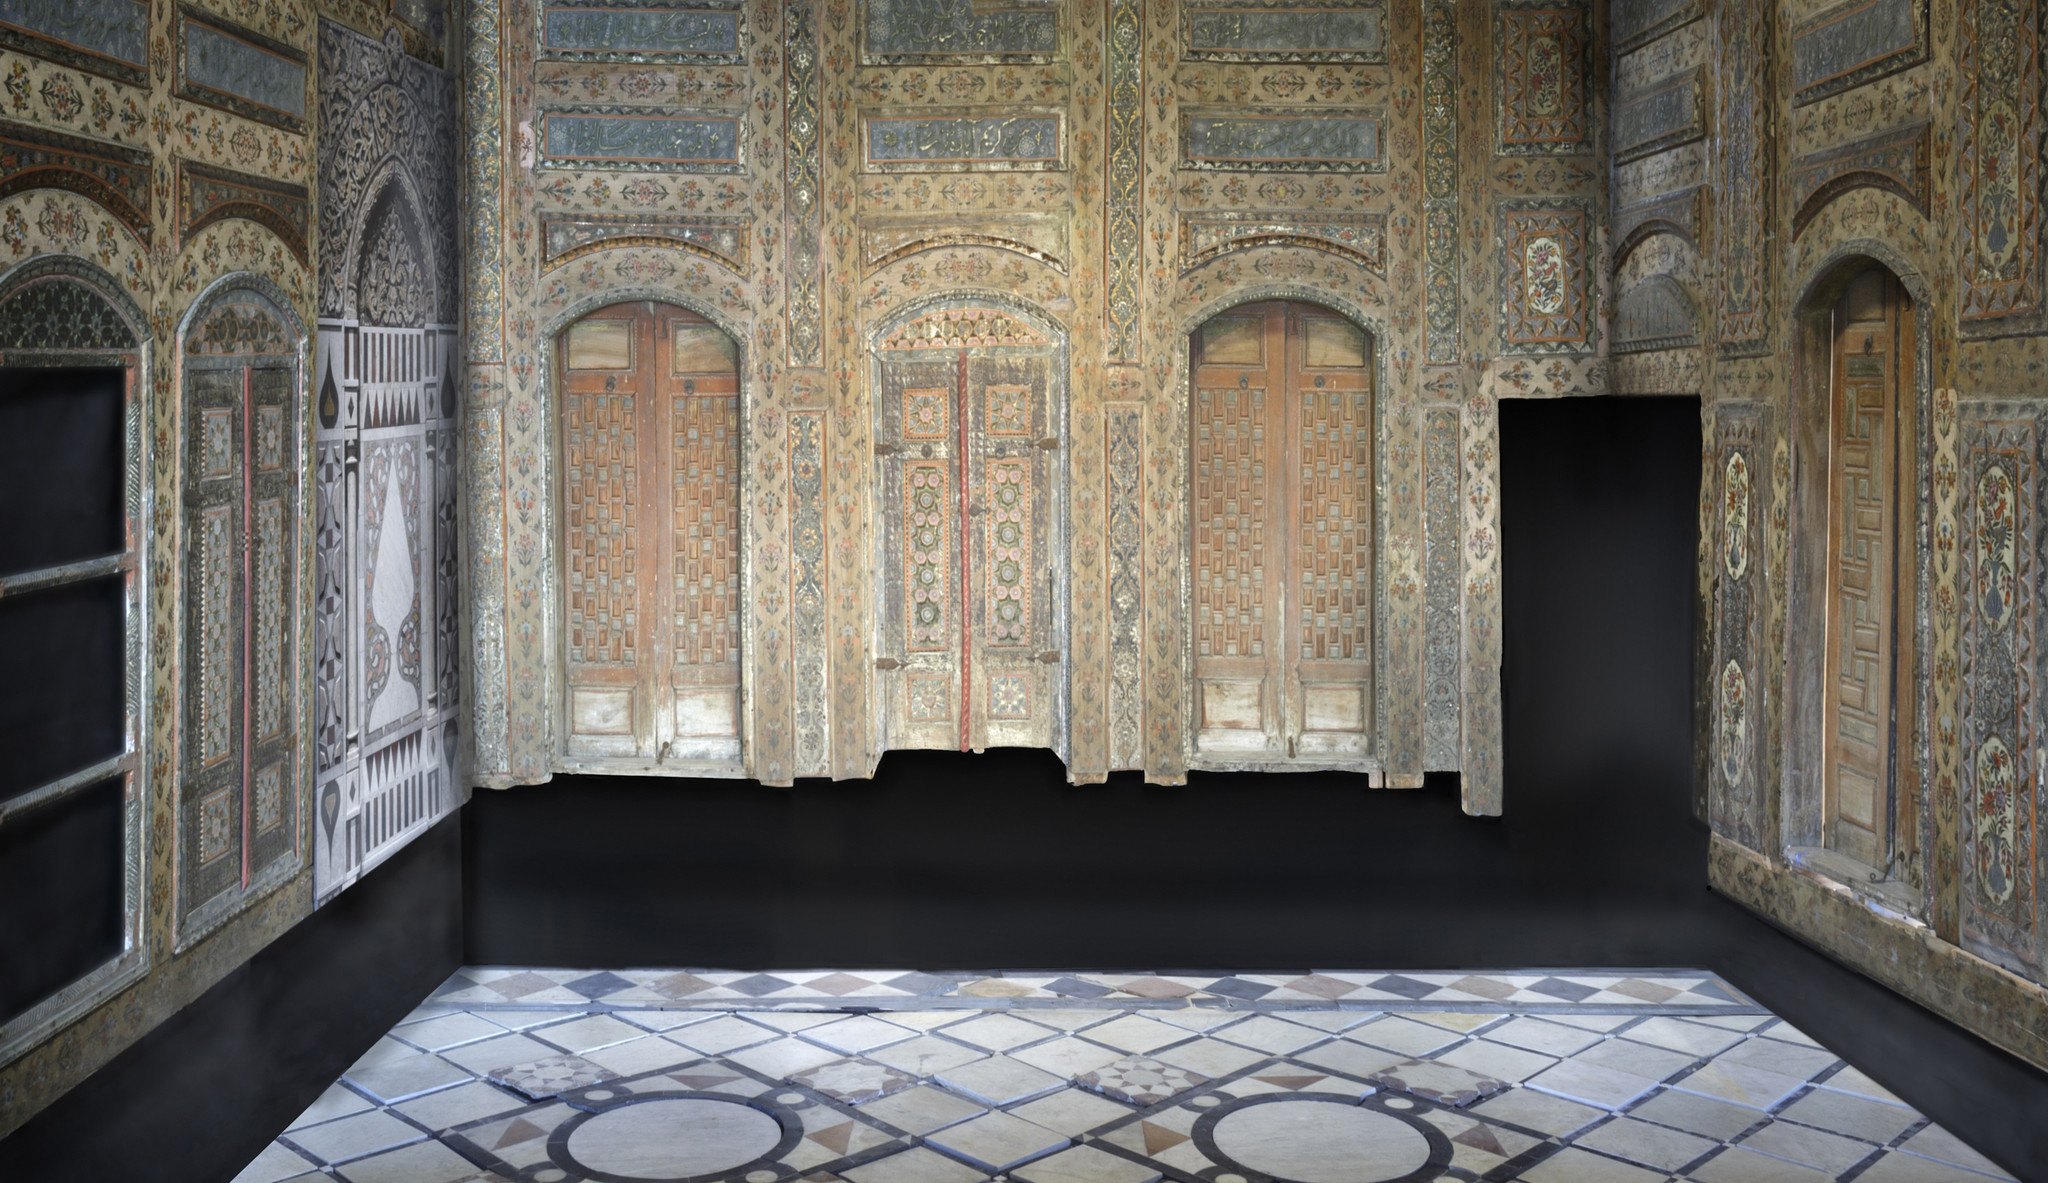 A Glimpse Inside Lacma S Hidden Damascus Room Before Its